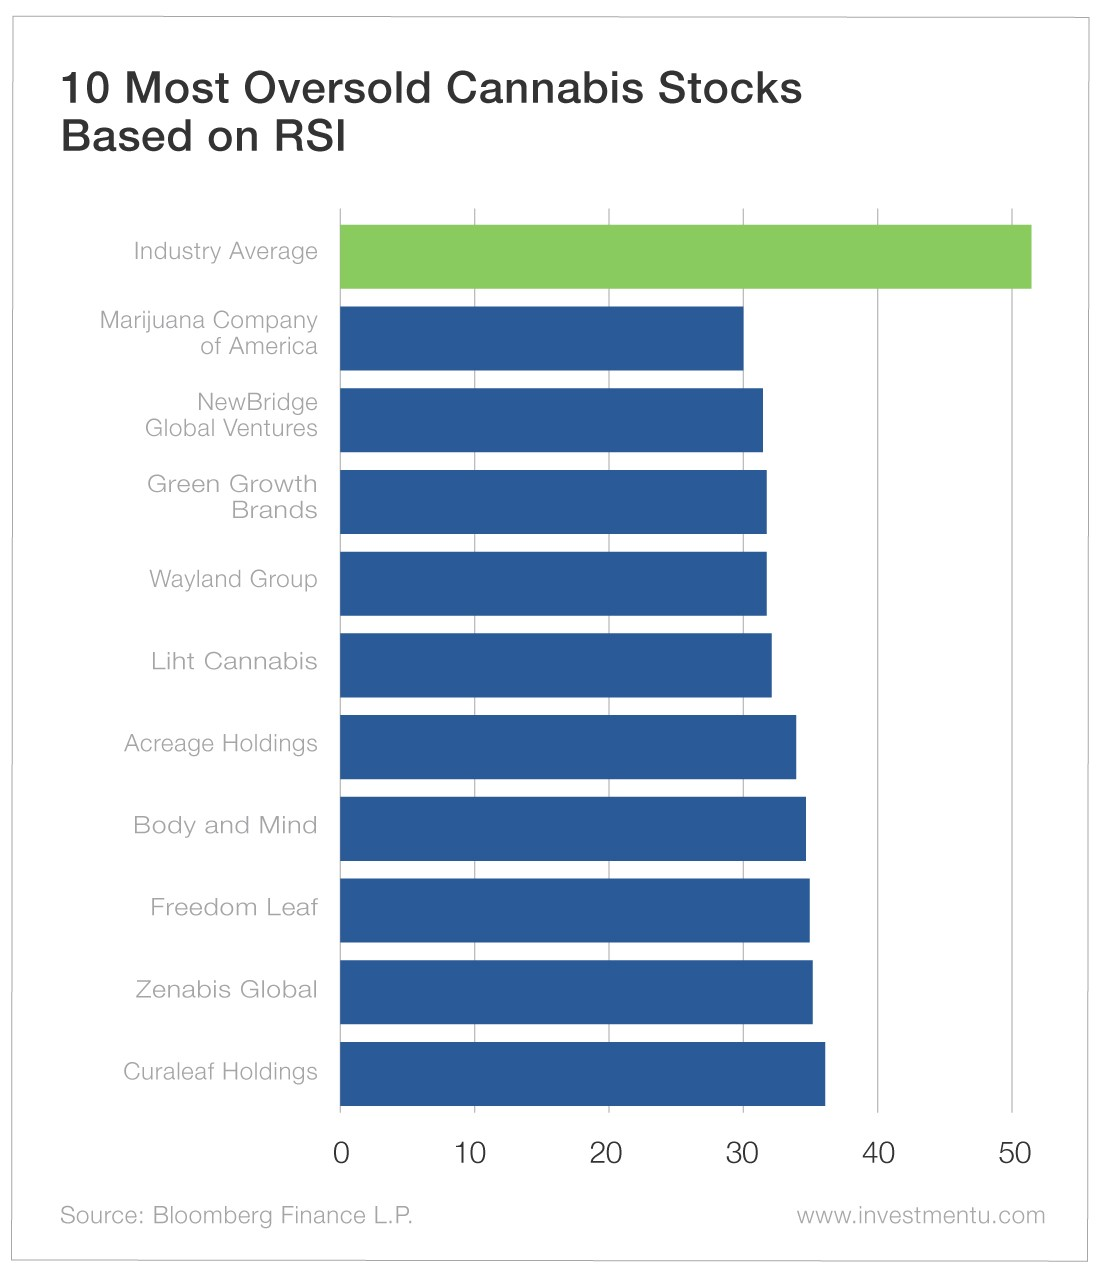 10 Most Oversold Cannabis Stocks Based on RSI